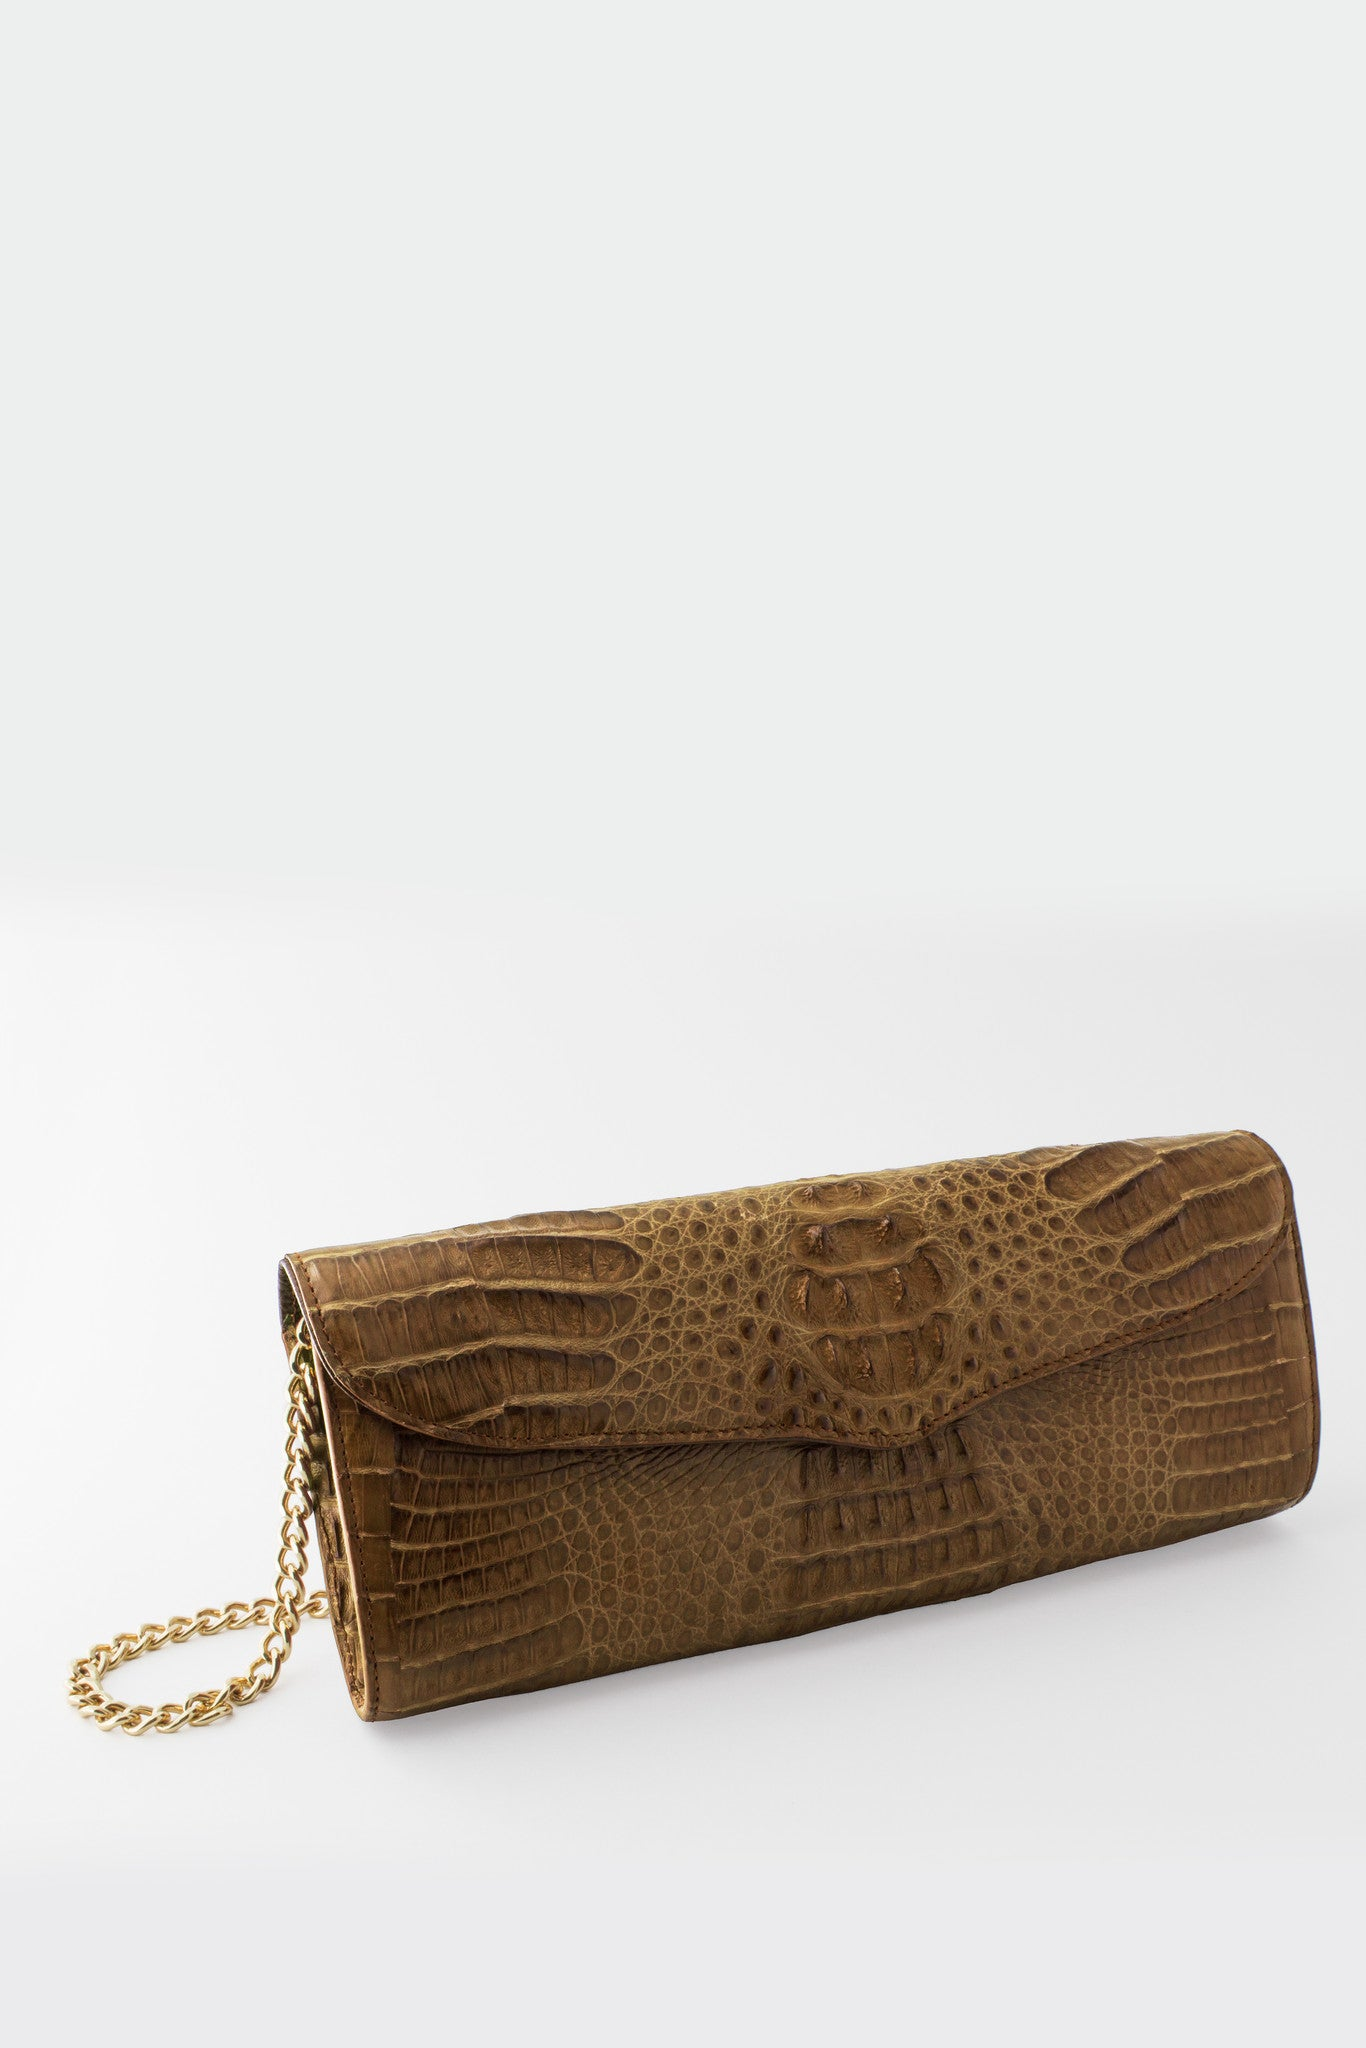 Victoria Columbian Crocodile Hornback Flap Clutch - Cigar